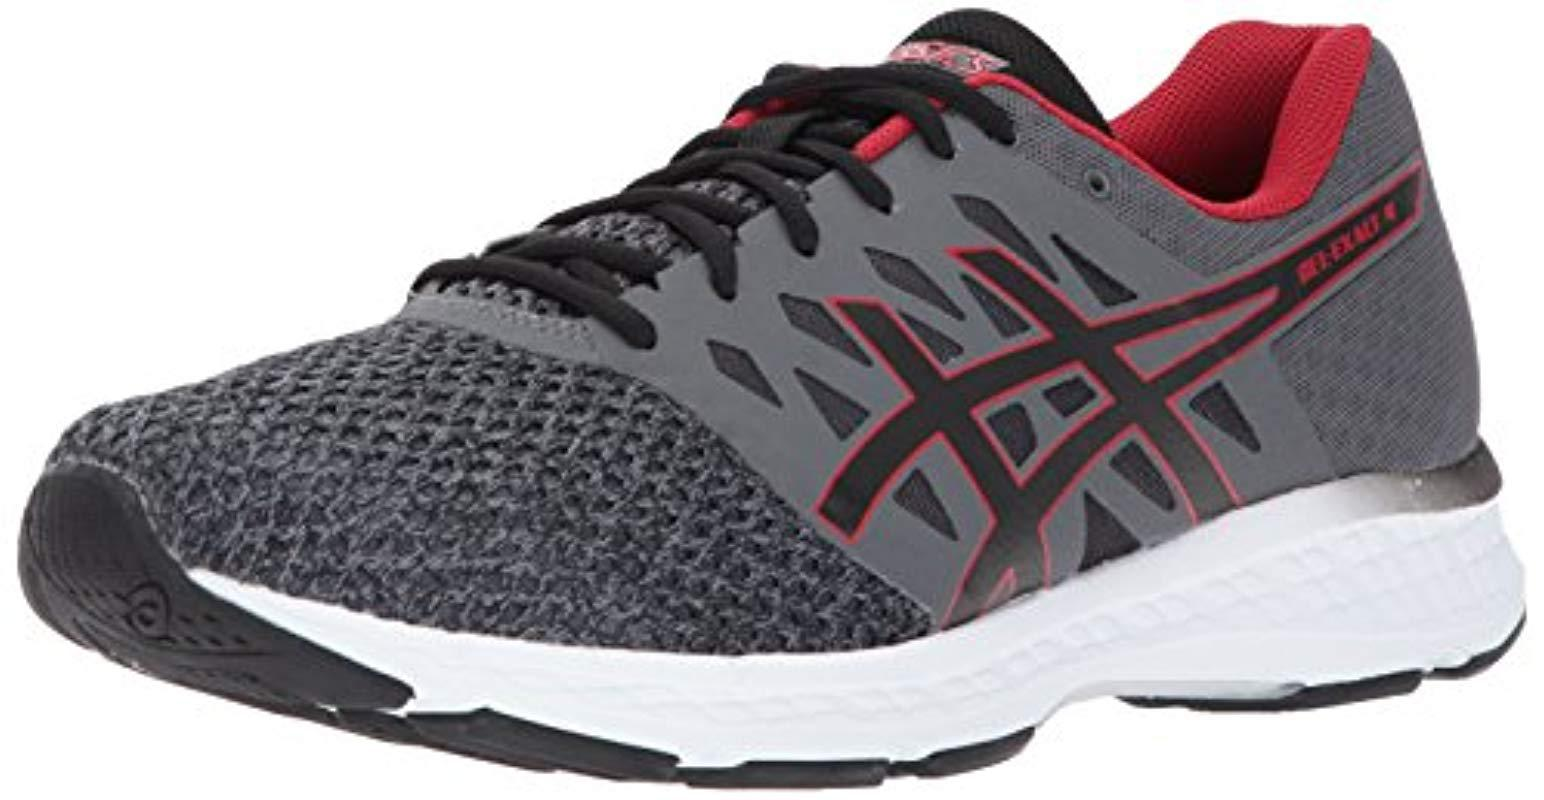 065e4601704 Lyst - Asics S Gel-exalt 4 Running Shoe in Black for Men - Save 56%